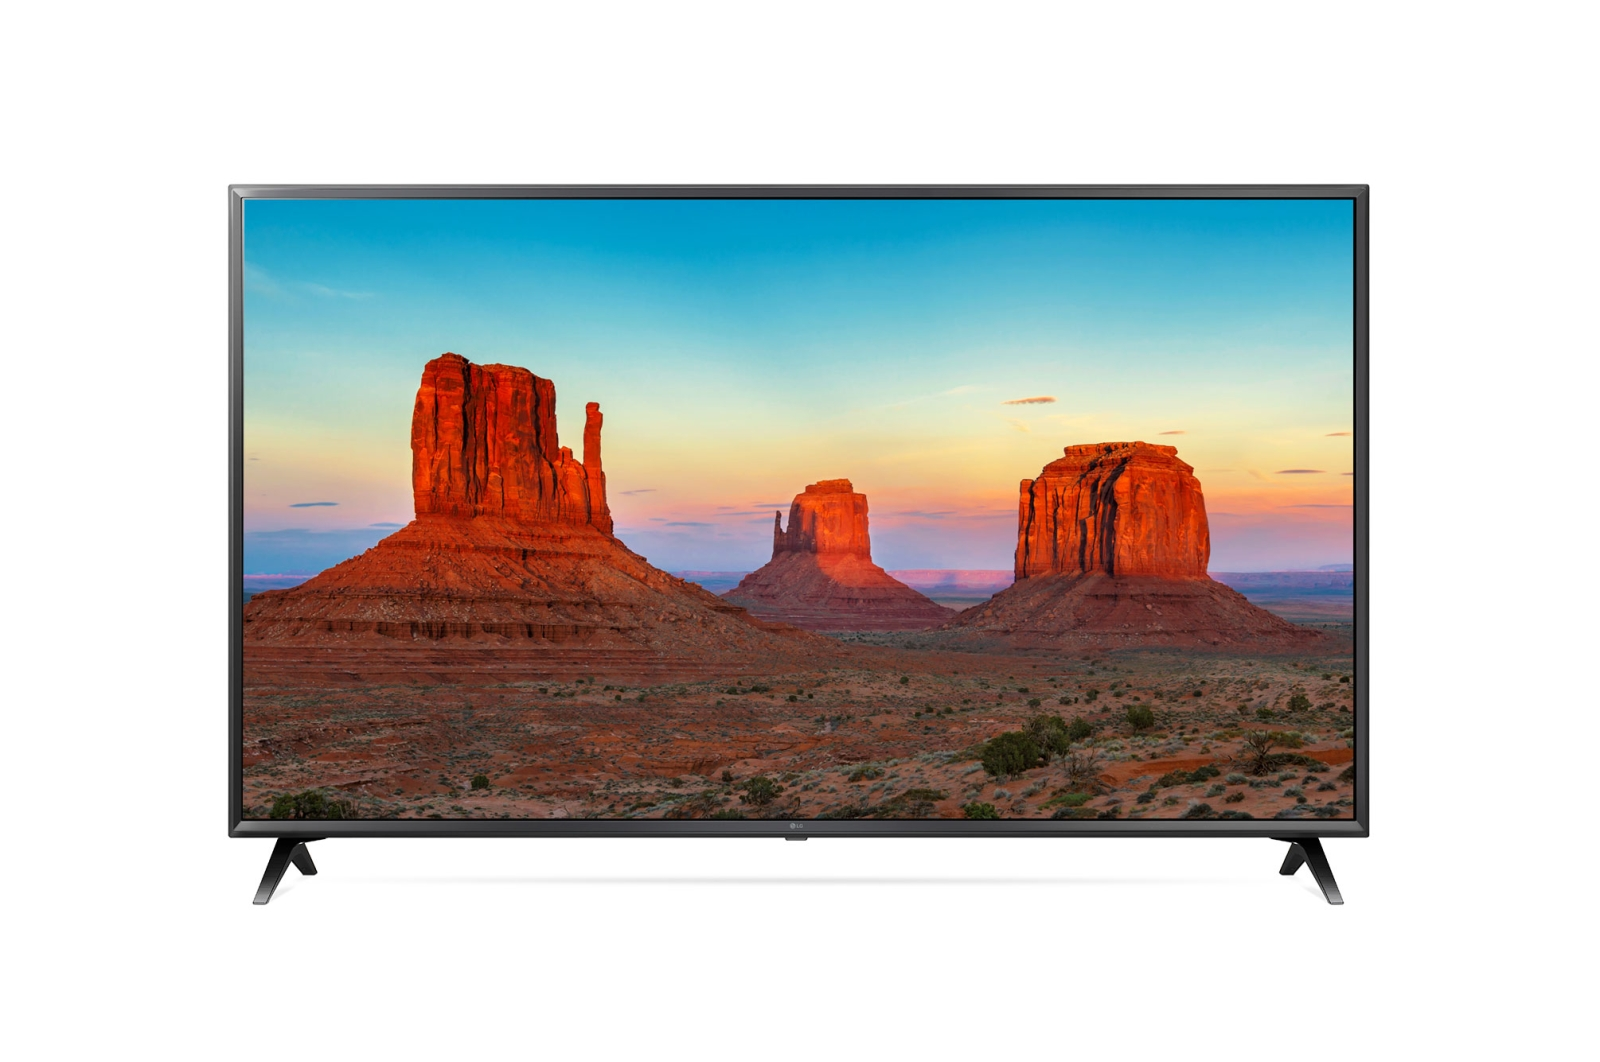 Телевизор LG 65UK6300 LED 65 Black, Smart TV, 16:9, 3840x2160, USB, HDMI, Wi-Fi, RJ-45, DVB-T2, C, S2 телевизор led 65 lg oled65e7v черный белый 3840x2160 120 гц wi fi smart tv rj 45 bluetooth widi